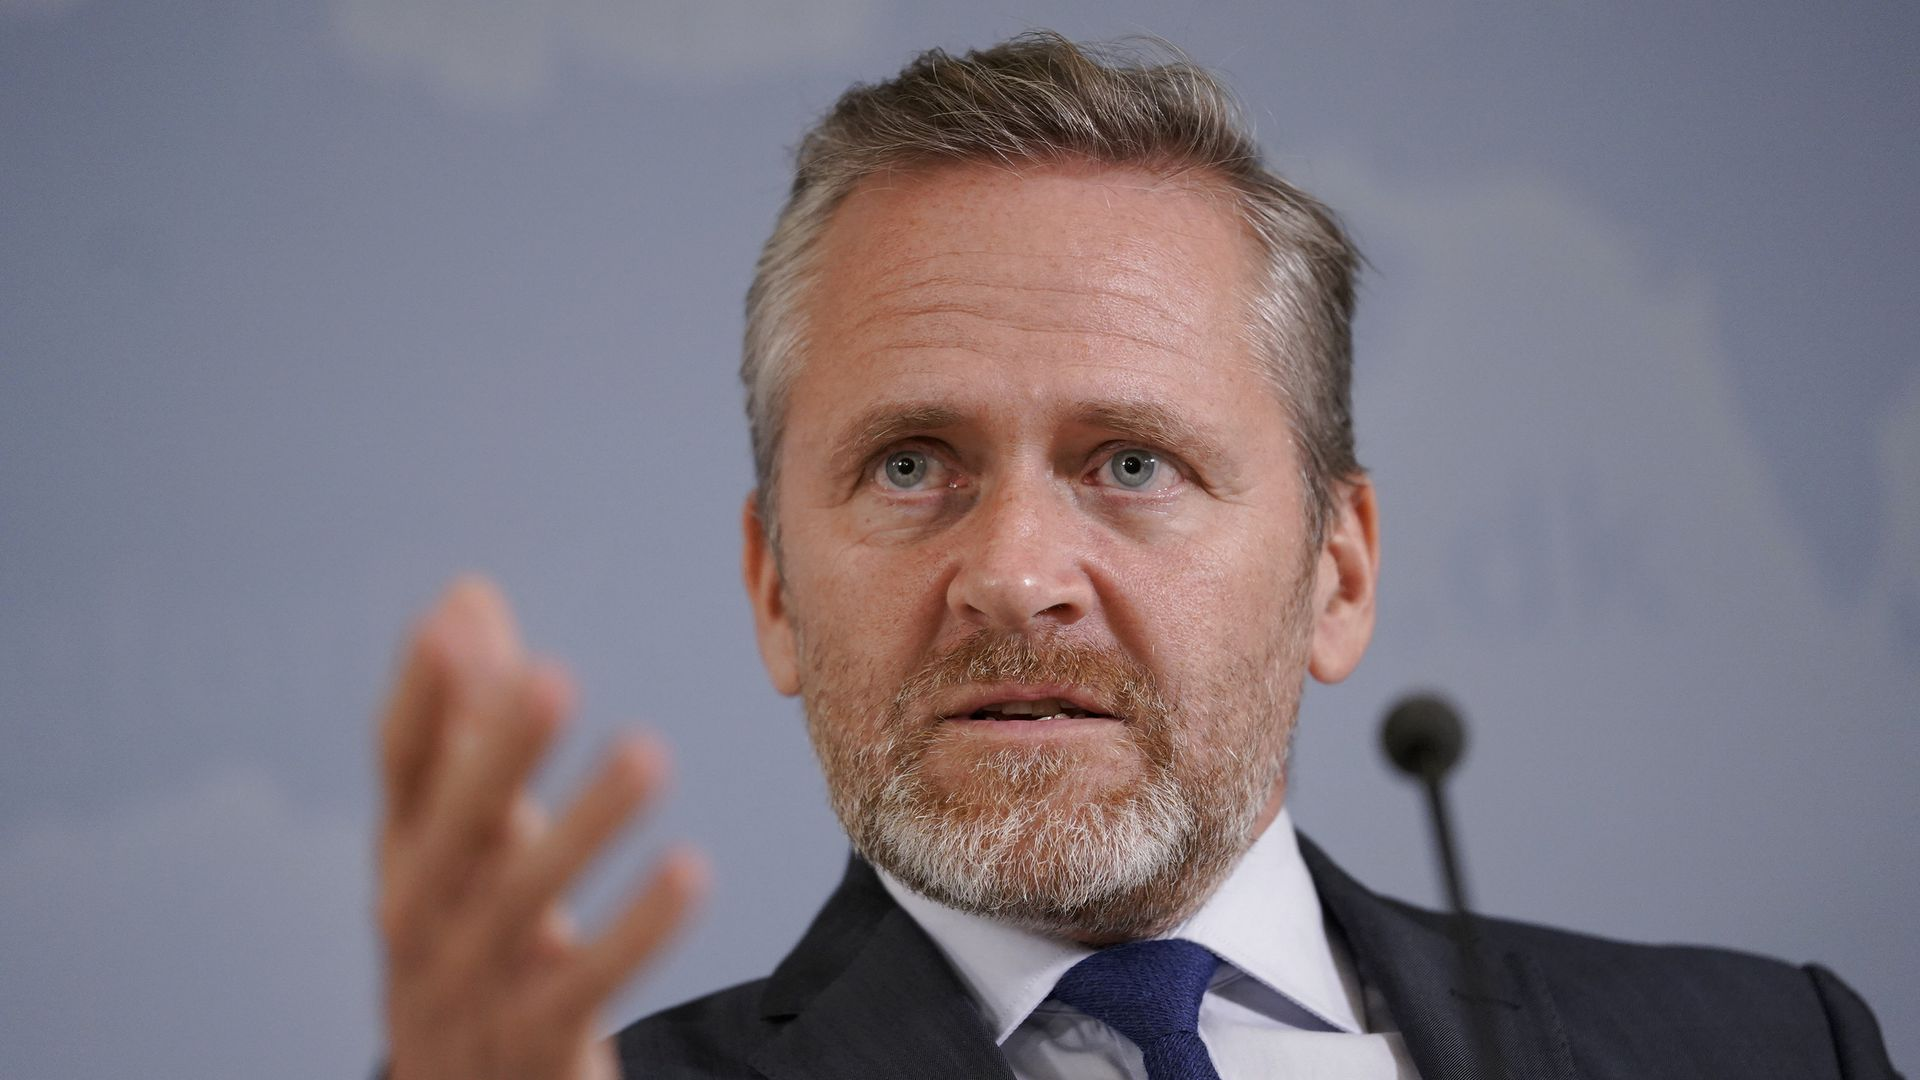 Danish Foreign Minister Anders Samuelsen gives a press conference in Copenhagen, on October 30, 2018.